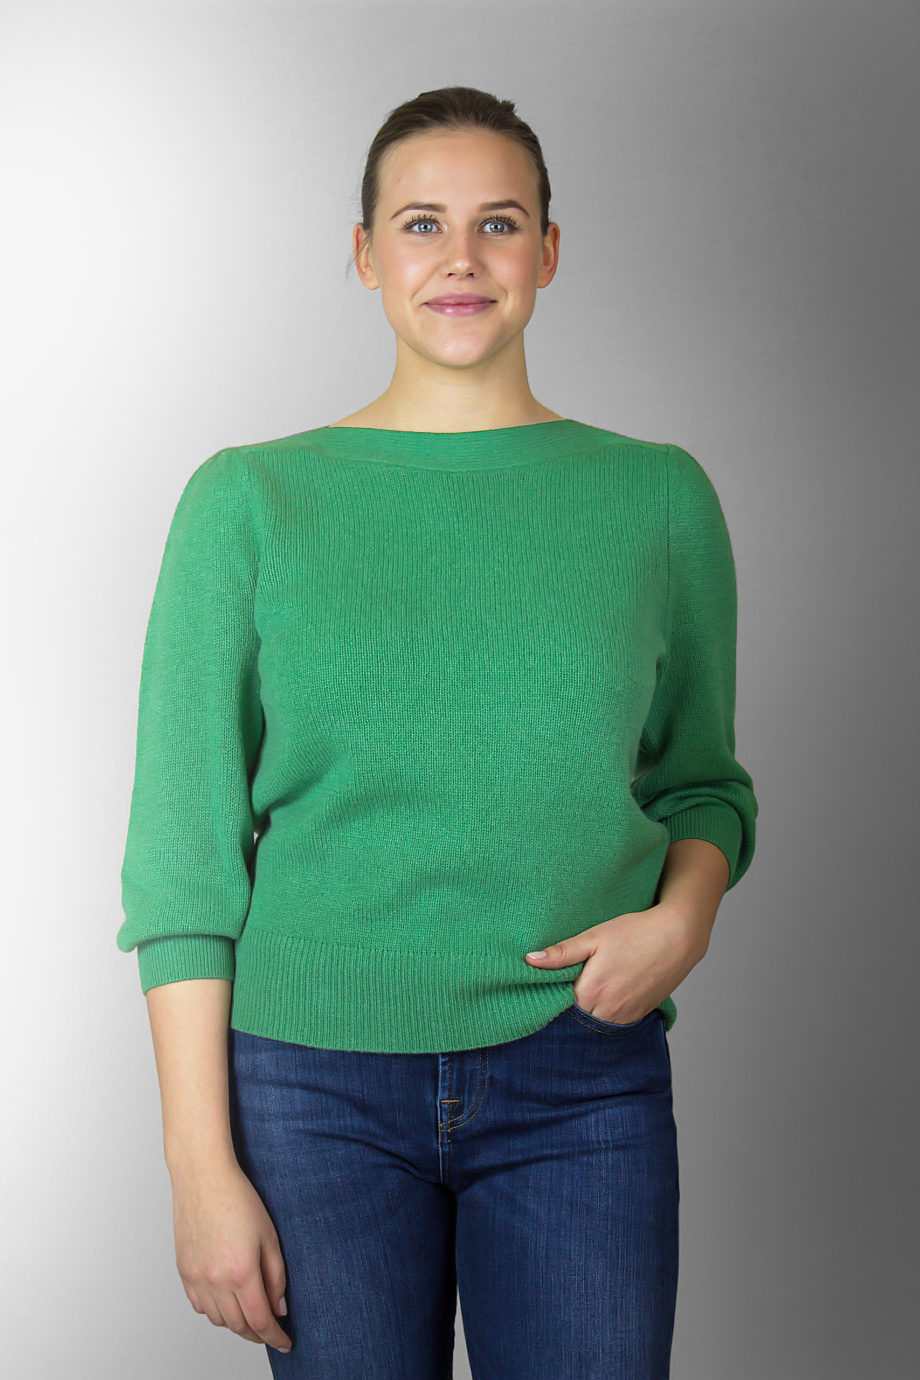 FTC Asparagus sweater